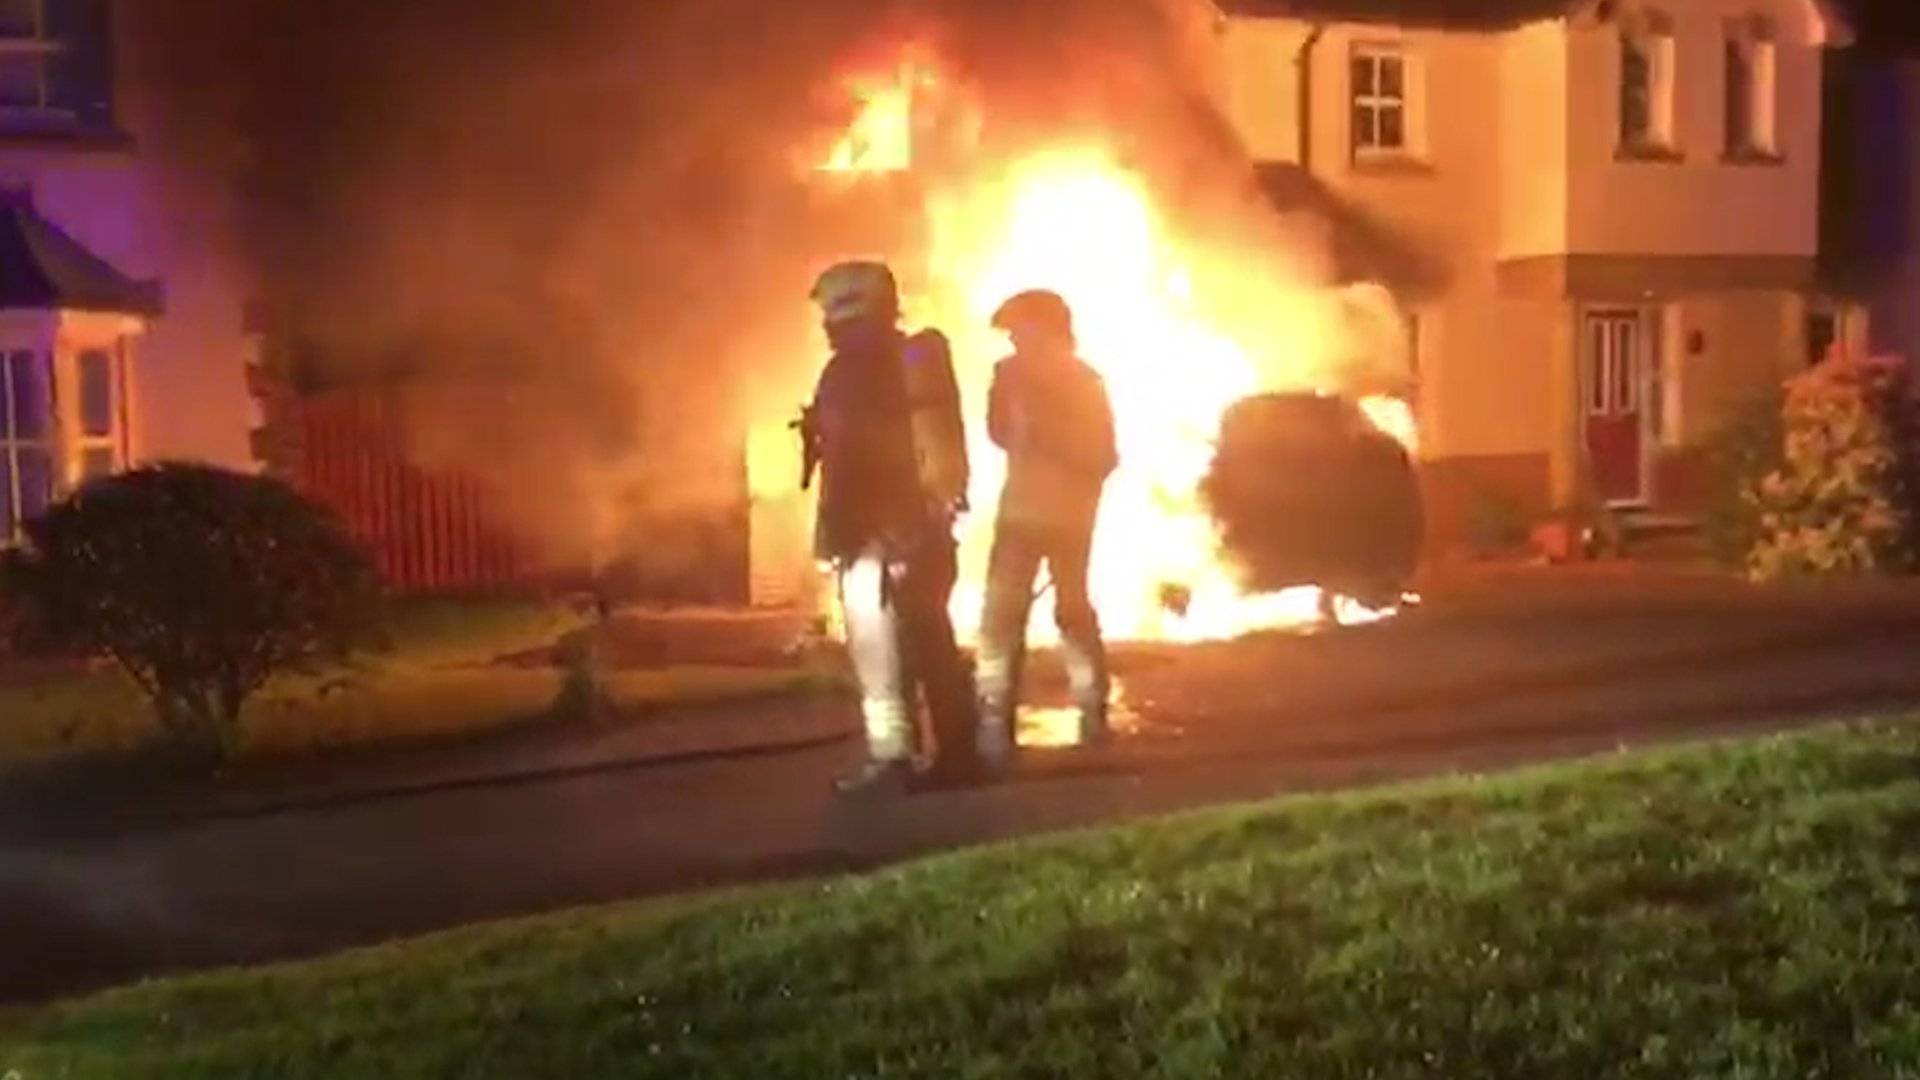 Councillor's car set on fire outside Strathaven home